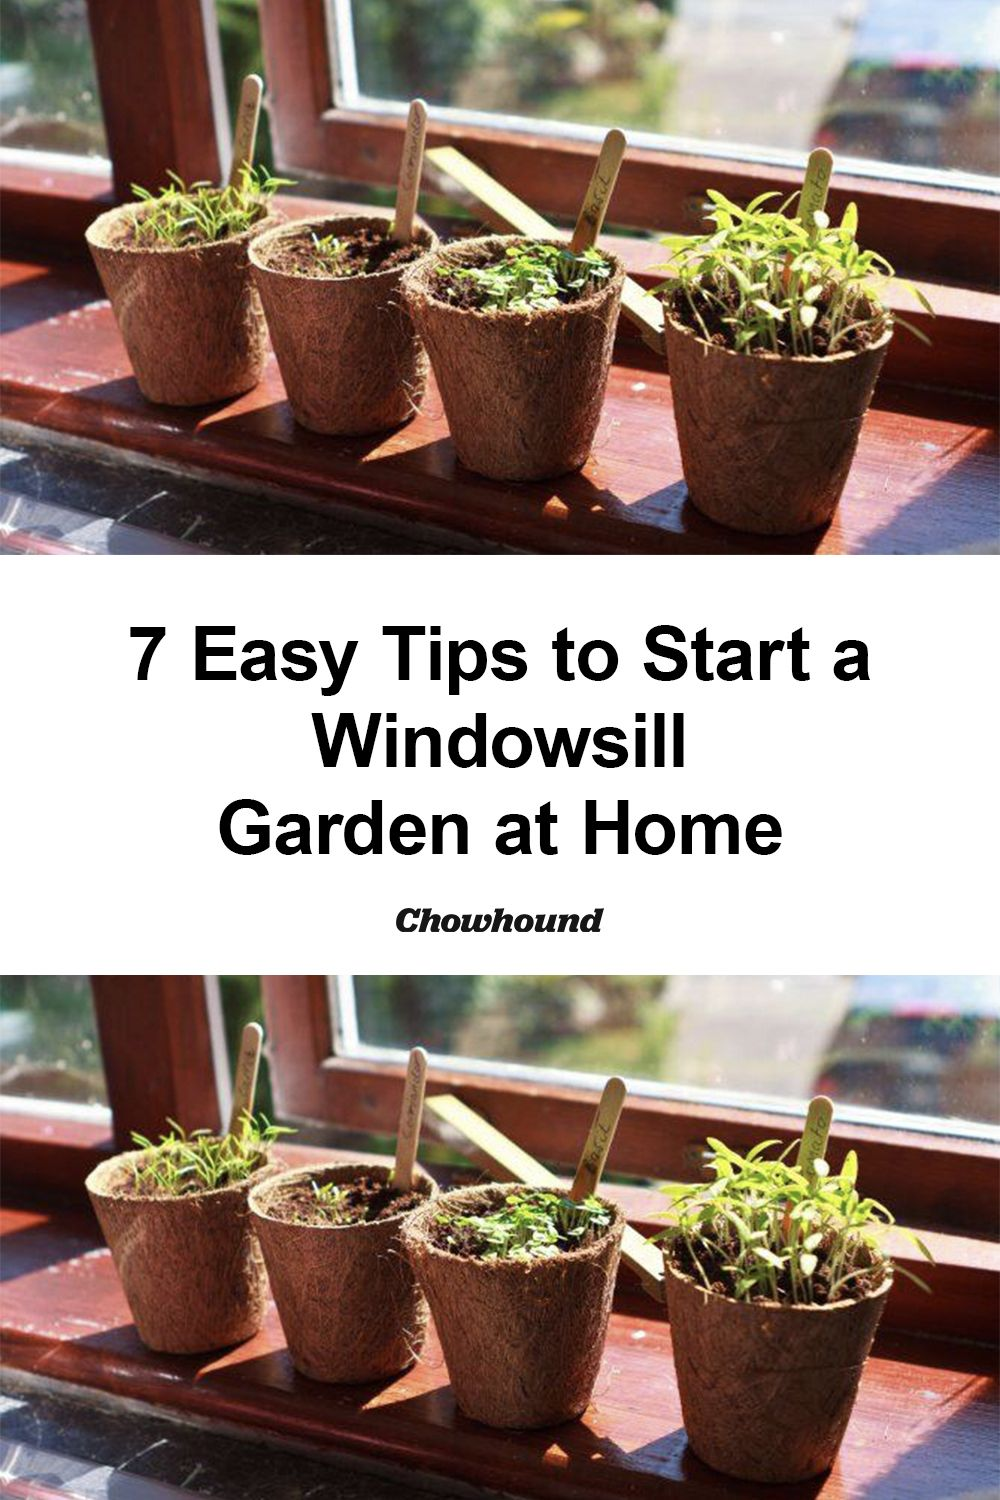 7 Easy Tips to Start a Windowsill Garden at Home in 2020